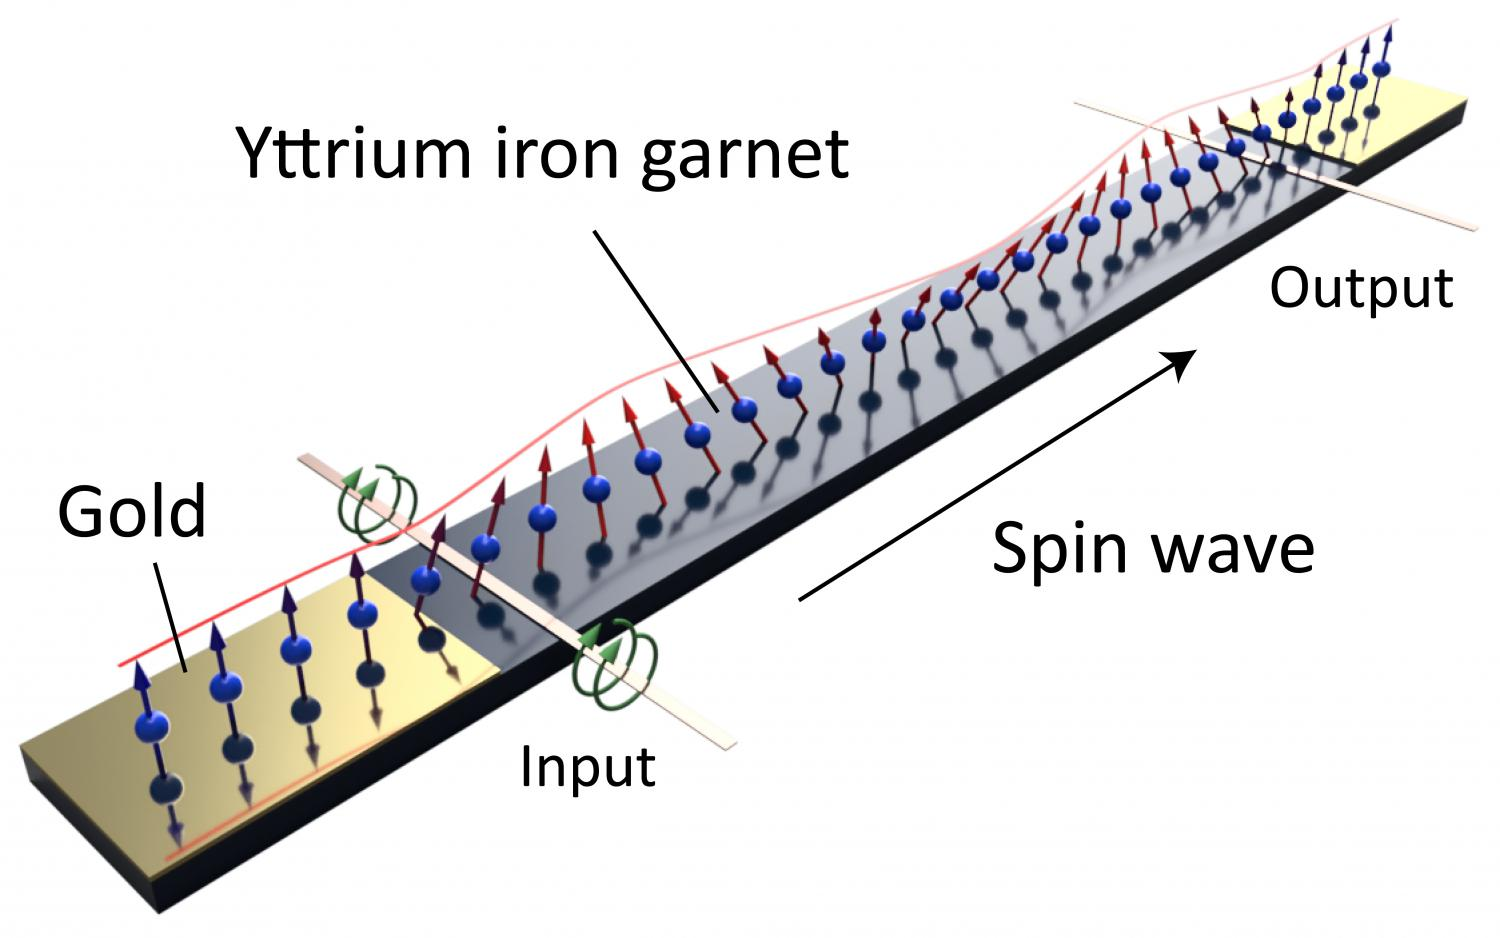 Smooth propagation of spin waves using gold